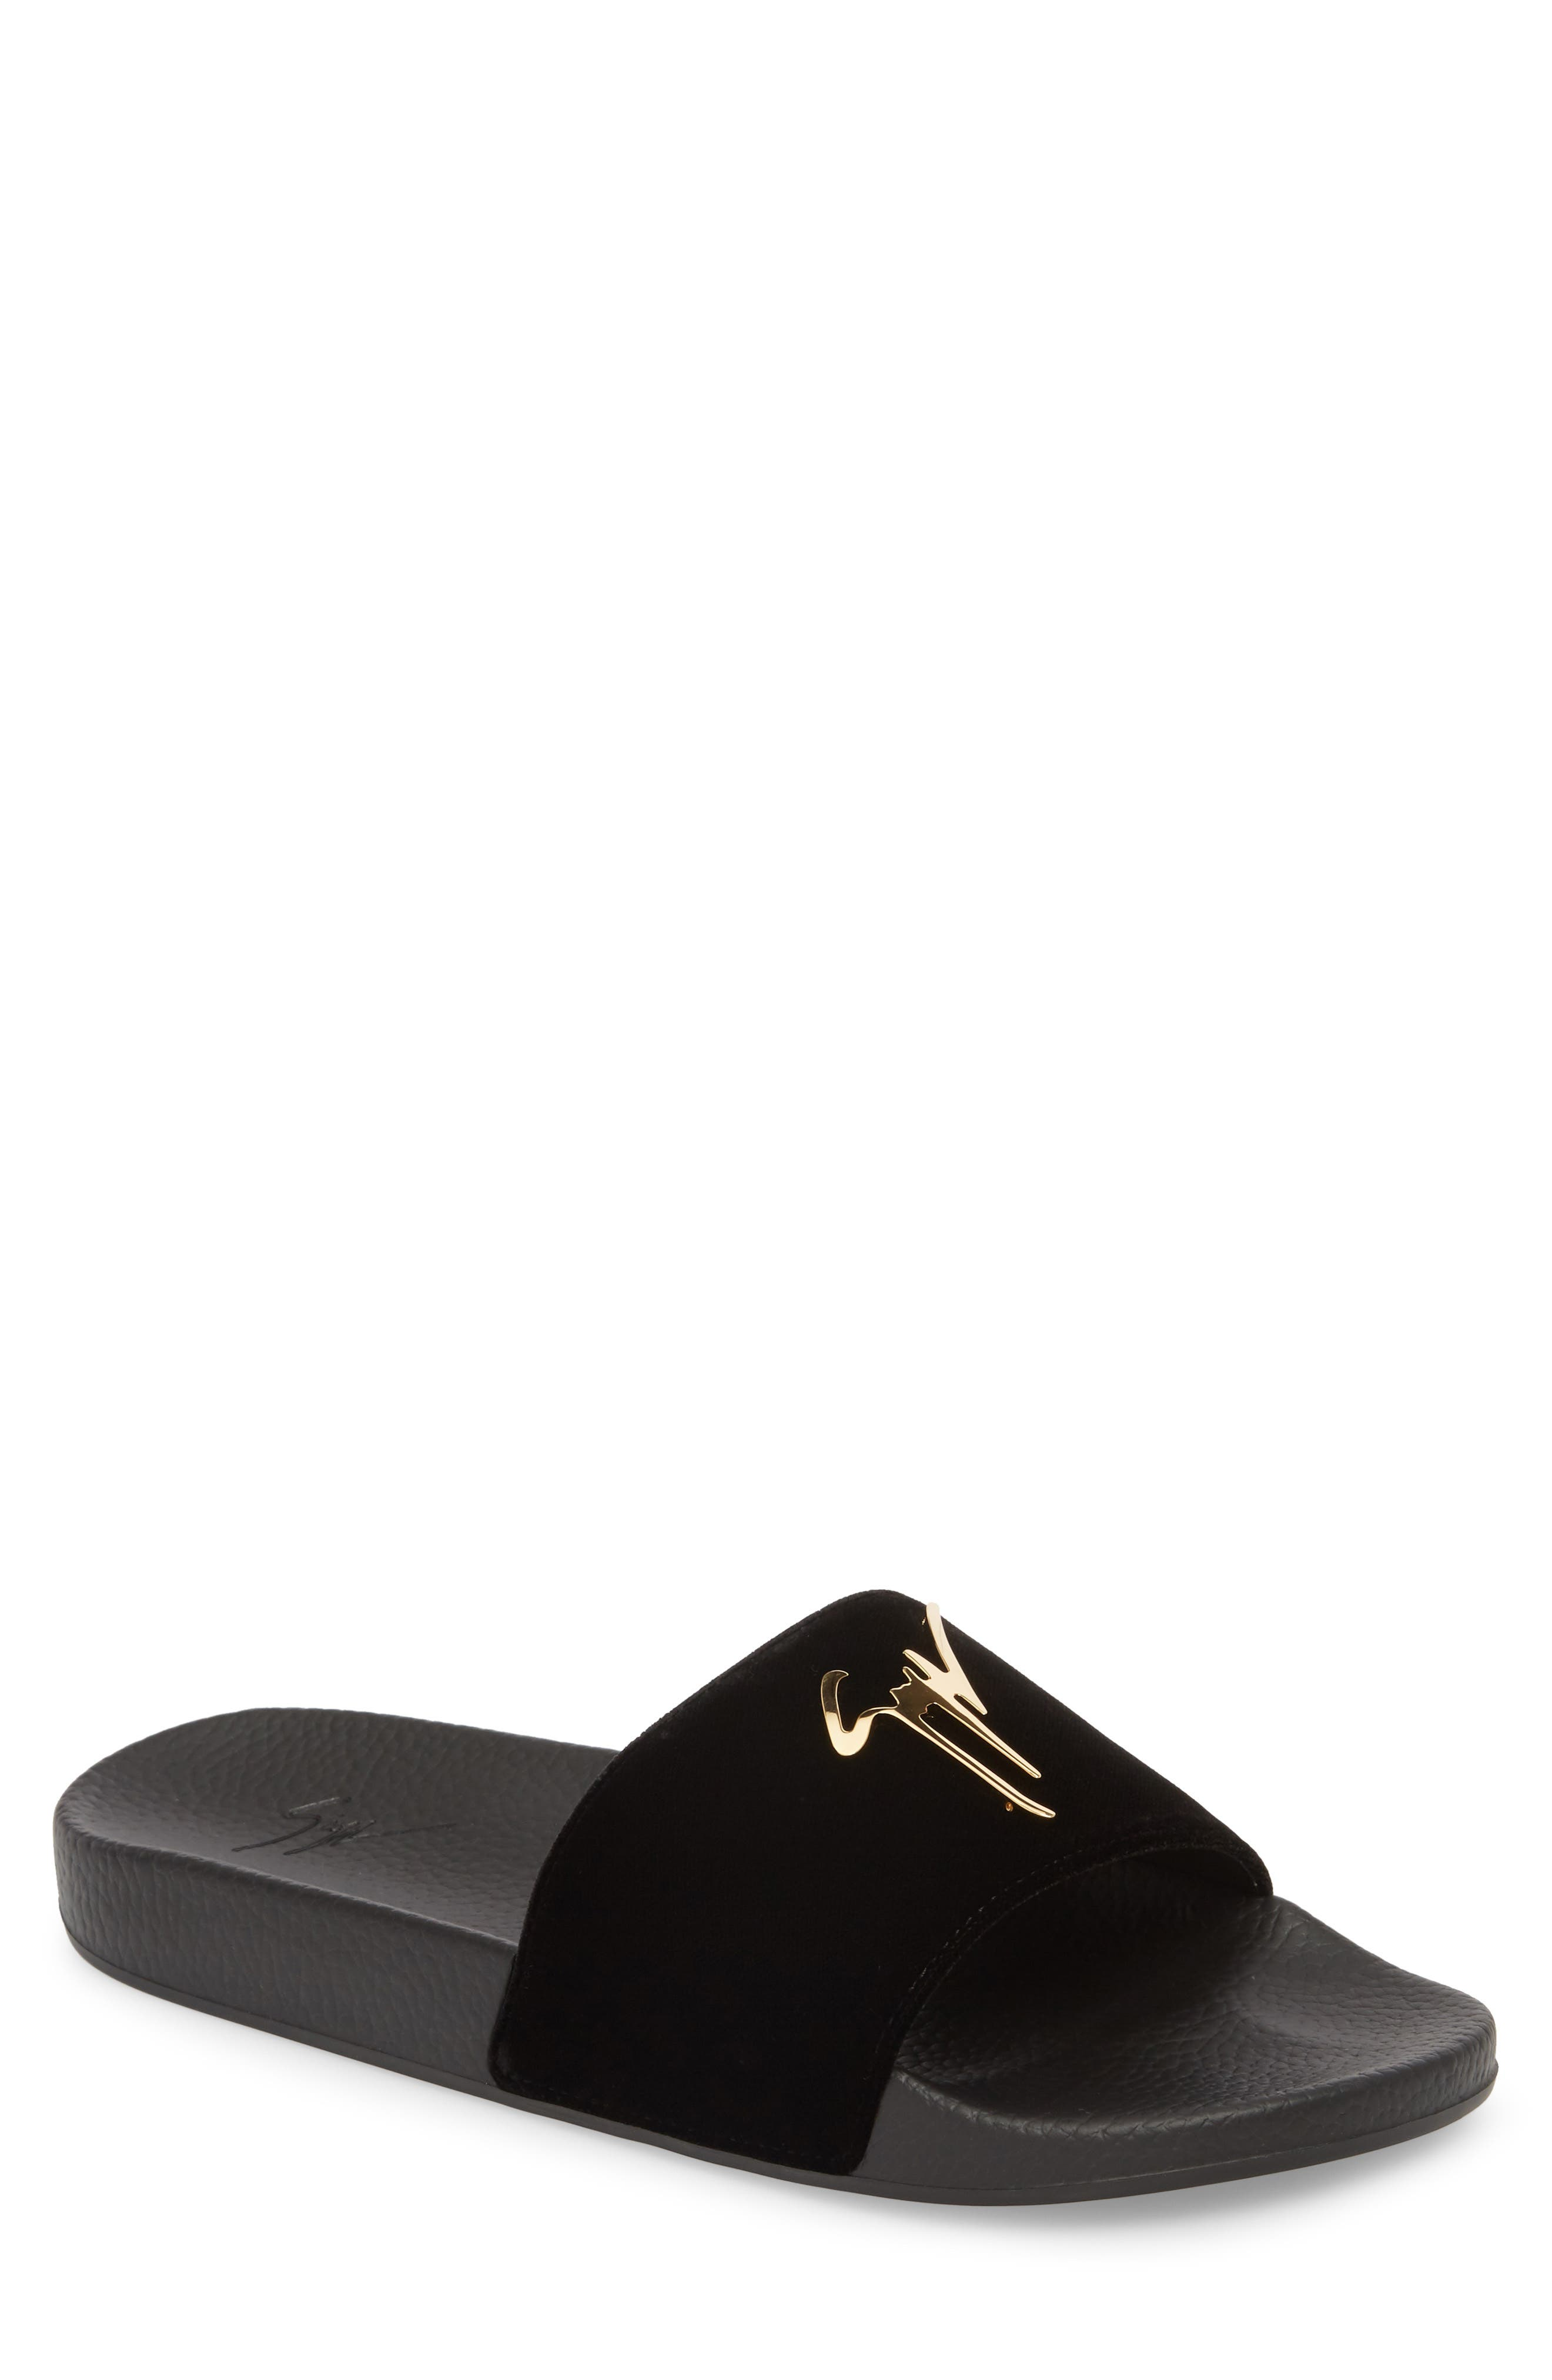 Slide Sandal,                         Main,                         color, NERO